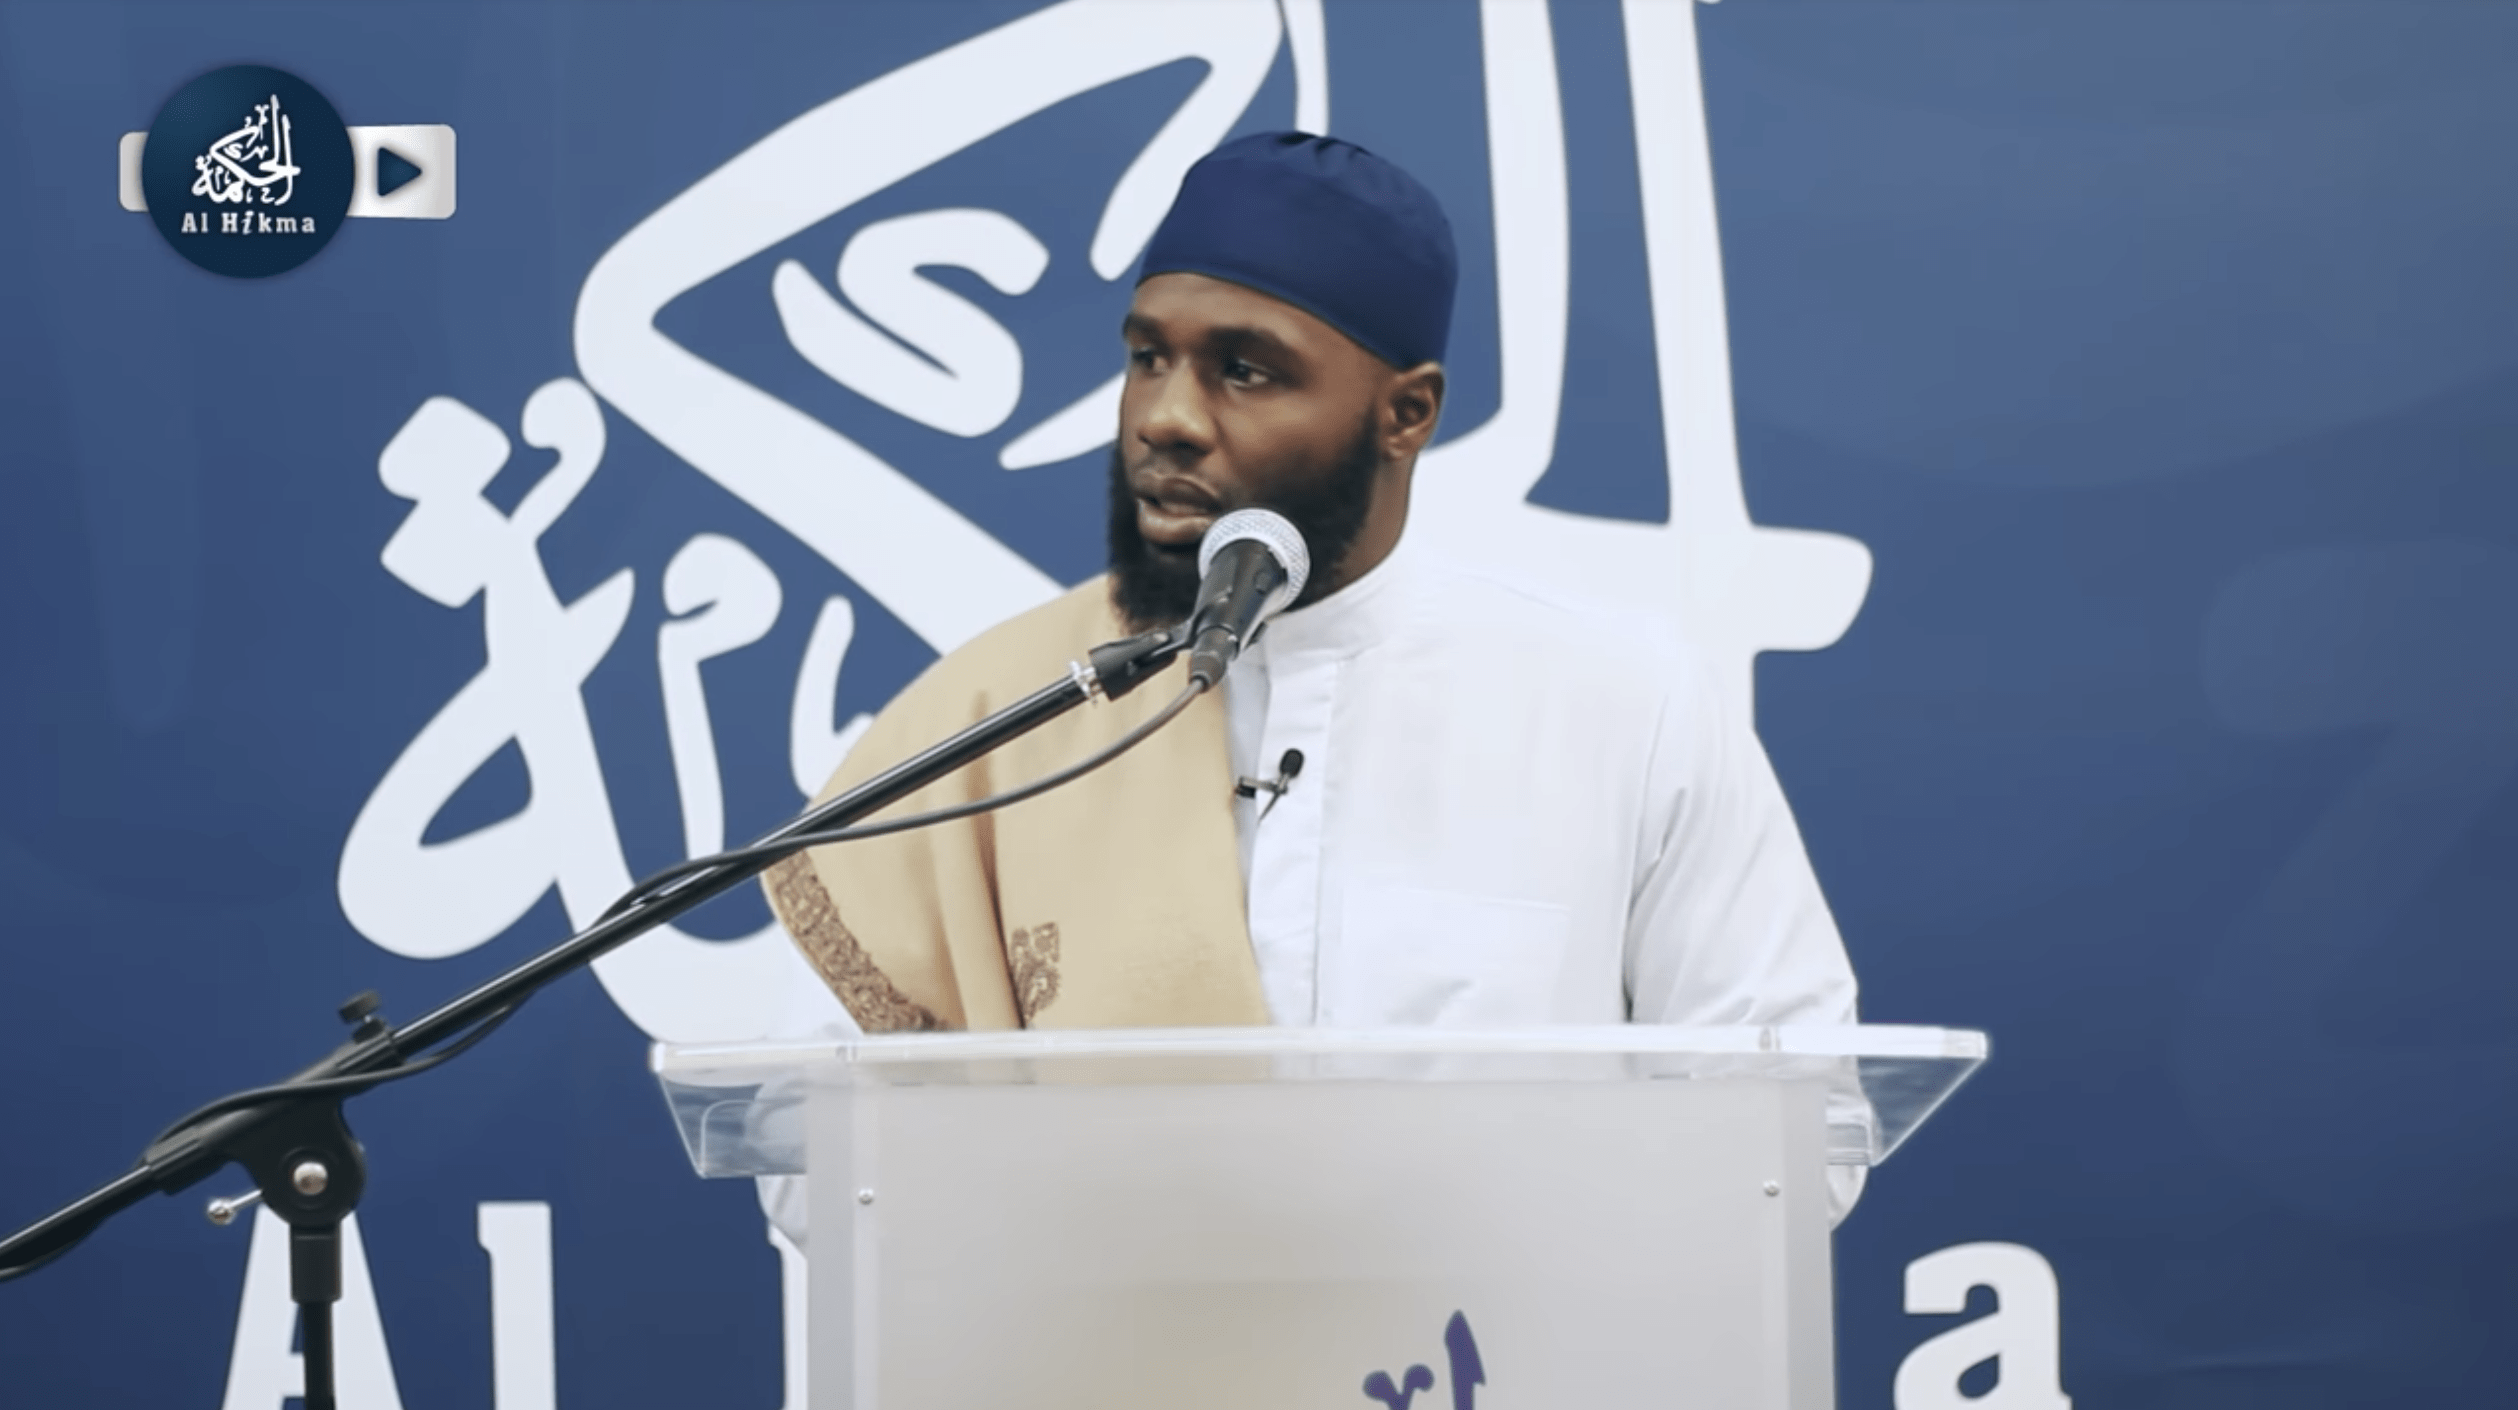 Ibn Ali Miller – Islam in the Hood: The Power Within